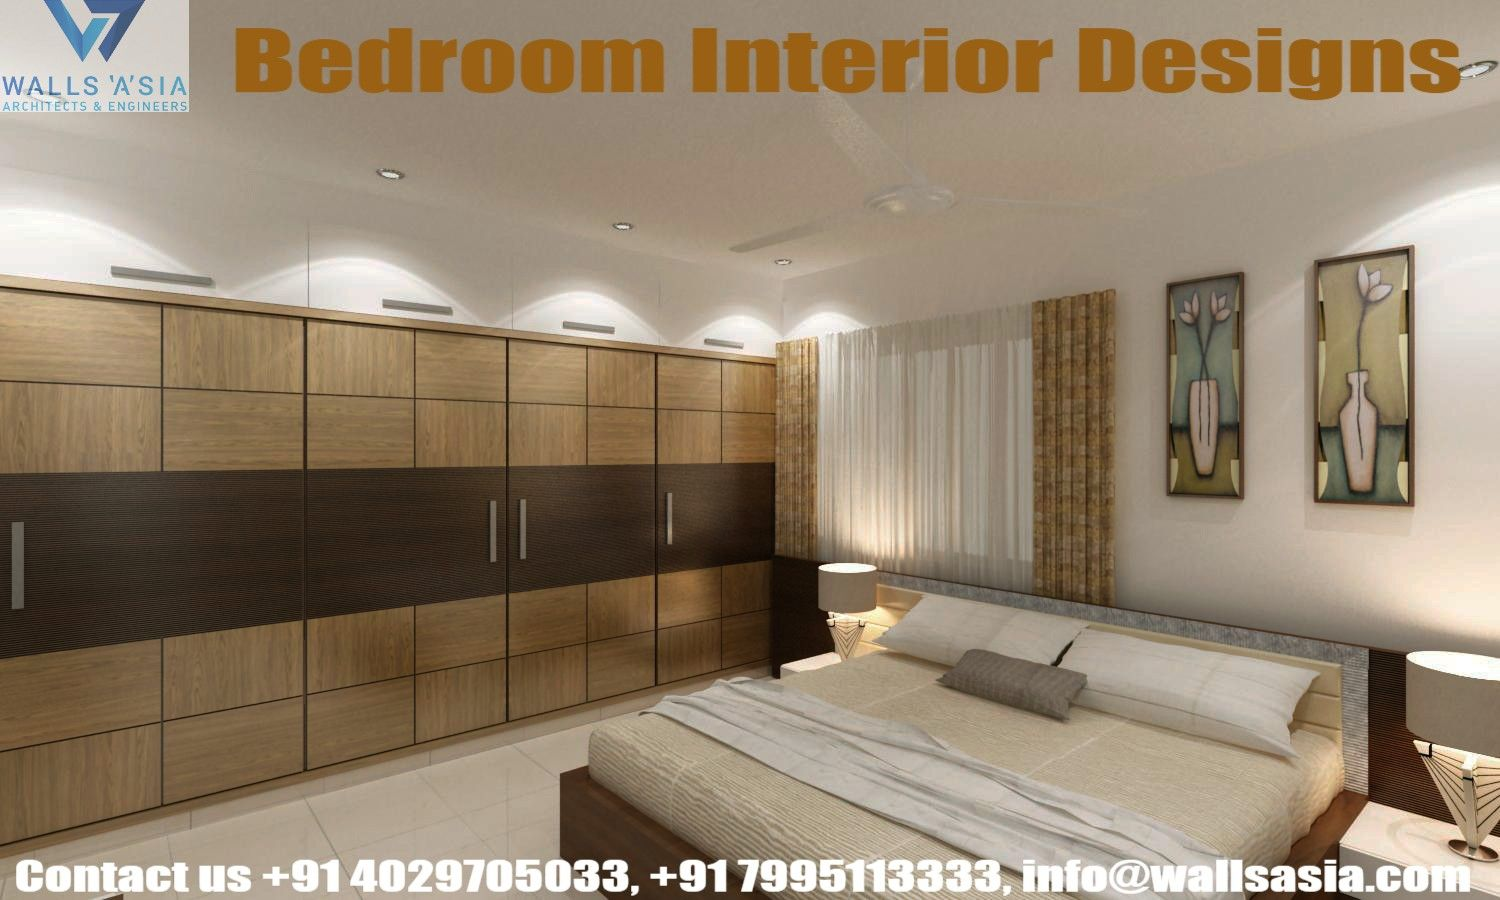 Bedroom Interior Designs By Walls Asia Architects And Interior